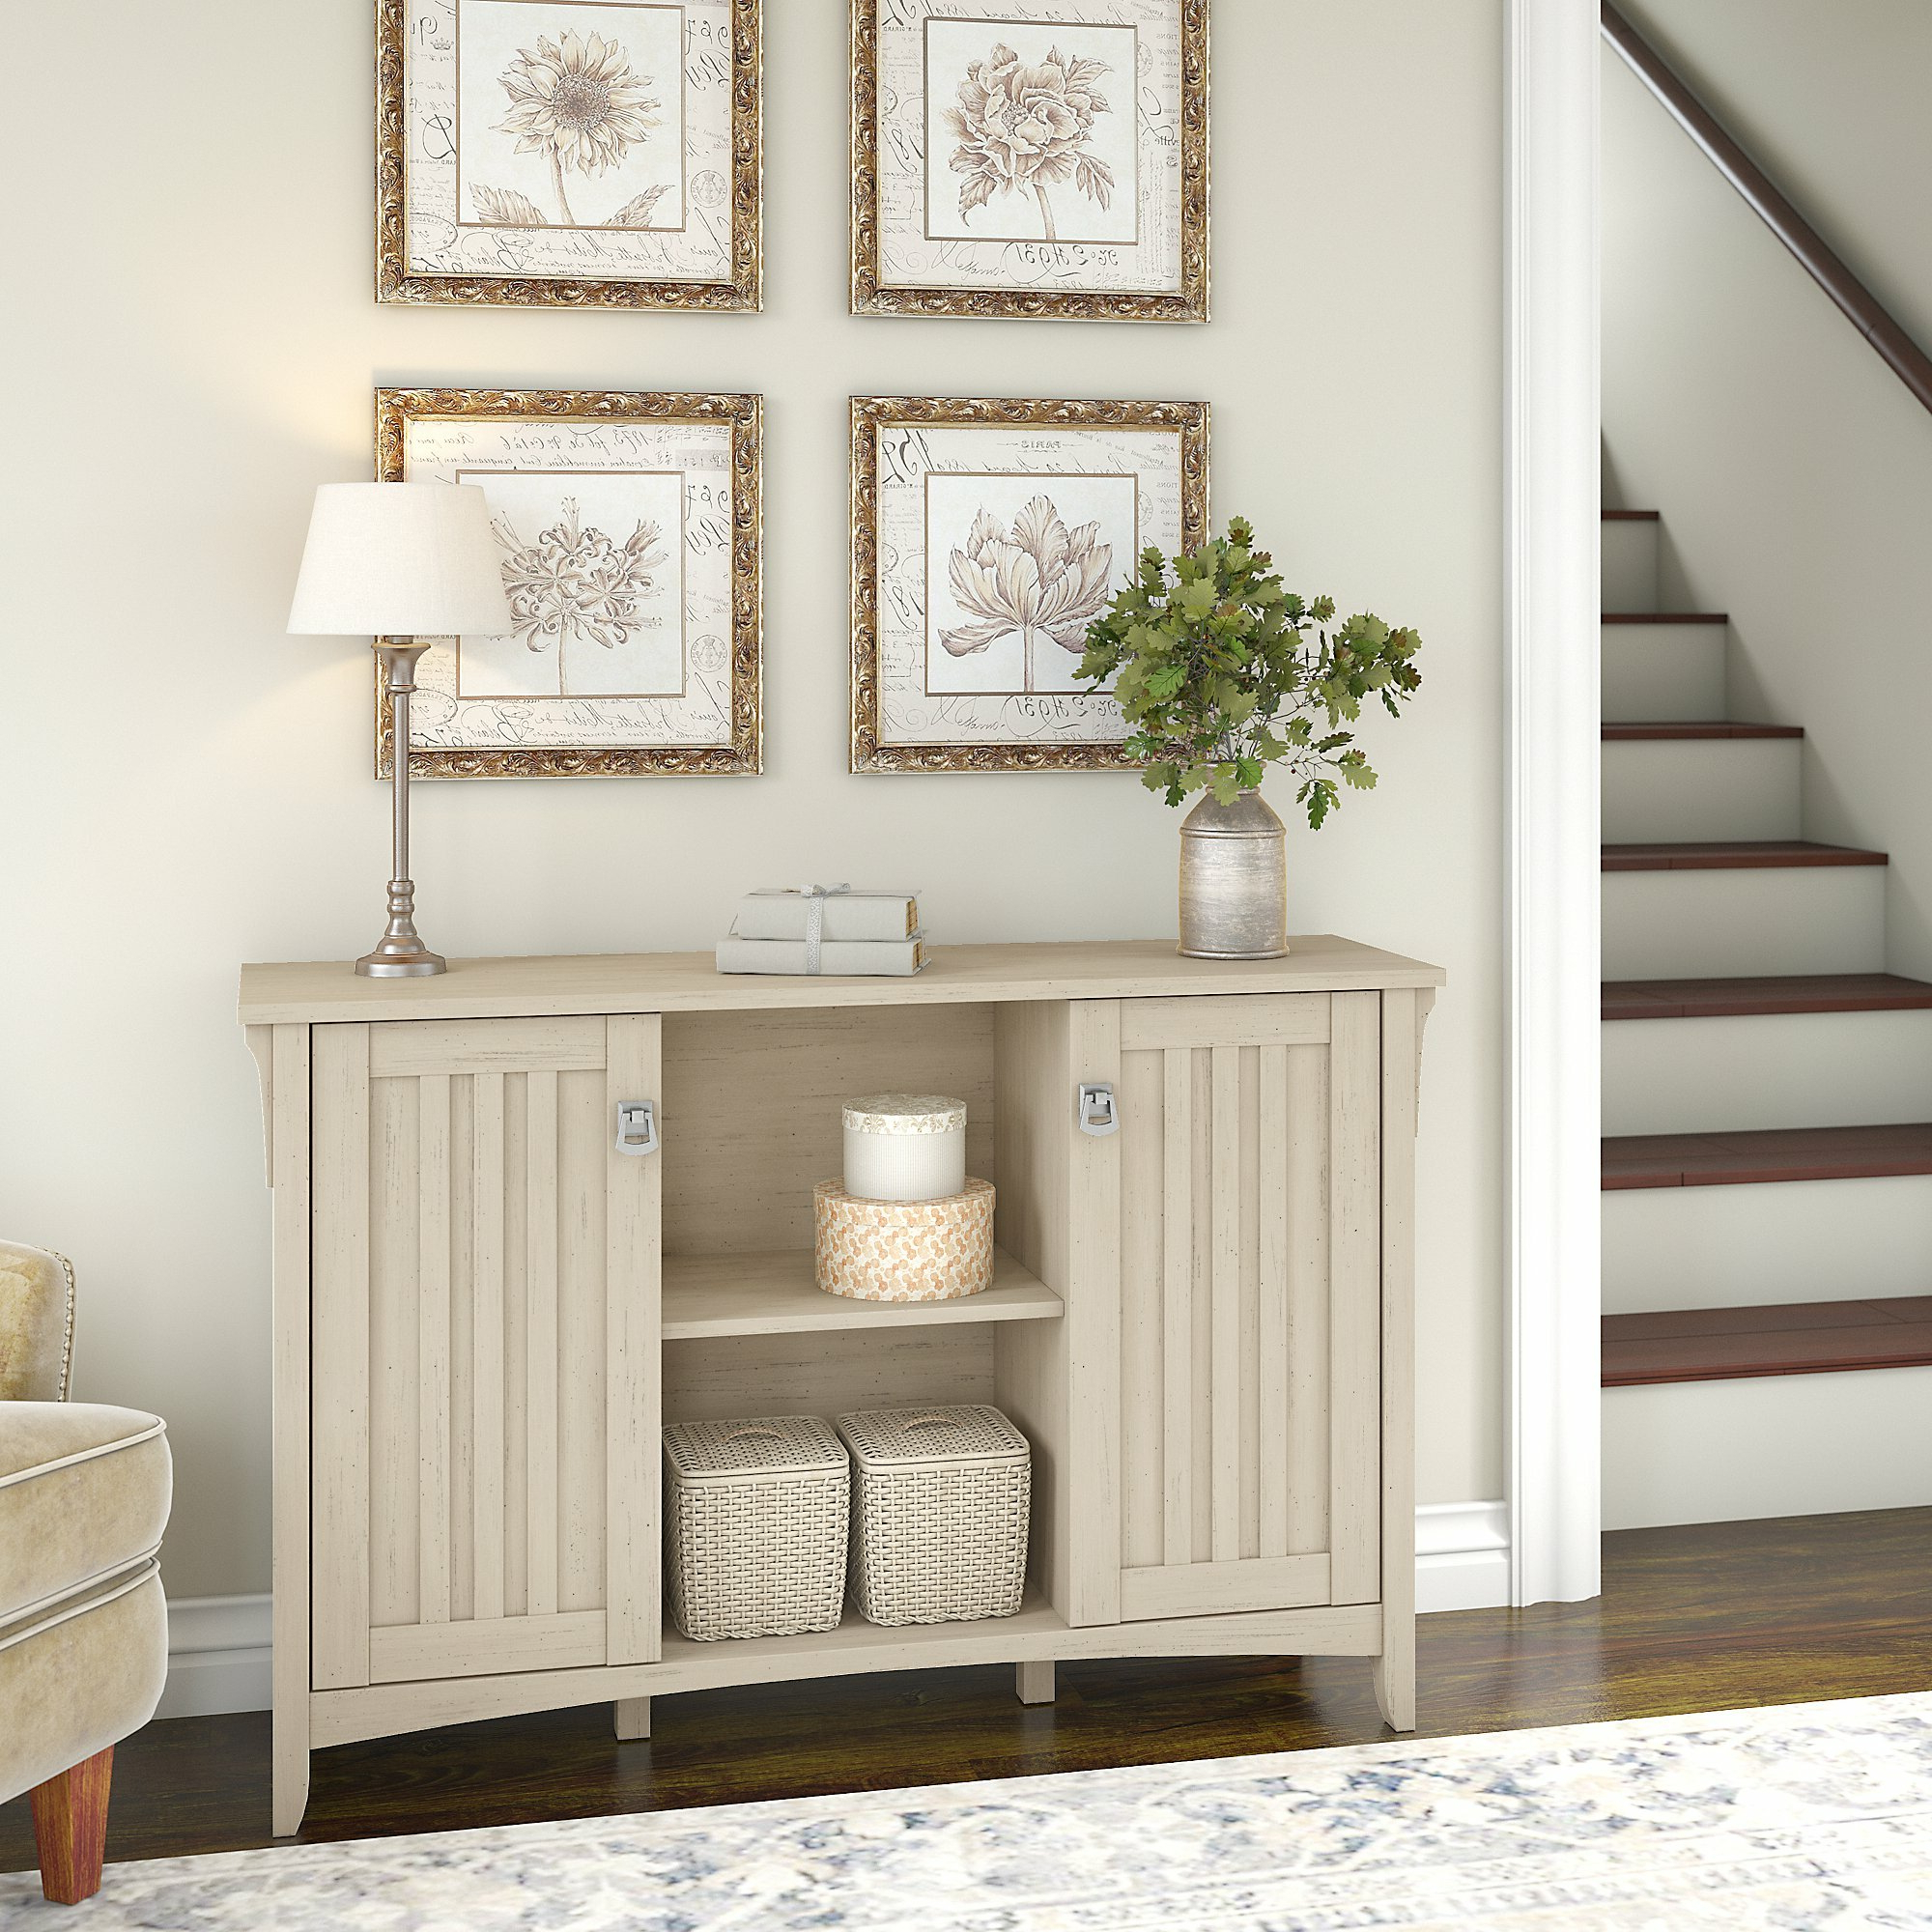 Farmhouse & Rustic Three Posts Sideboards & Buffets (View 15 of 20)